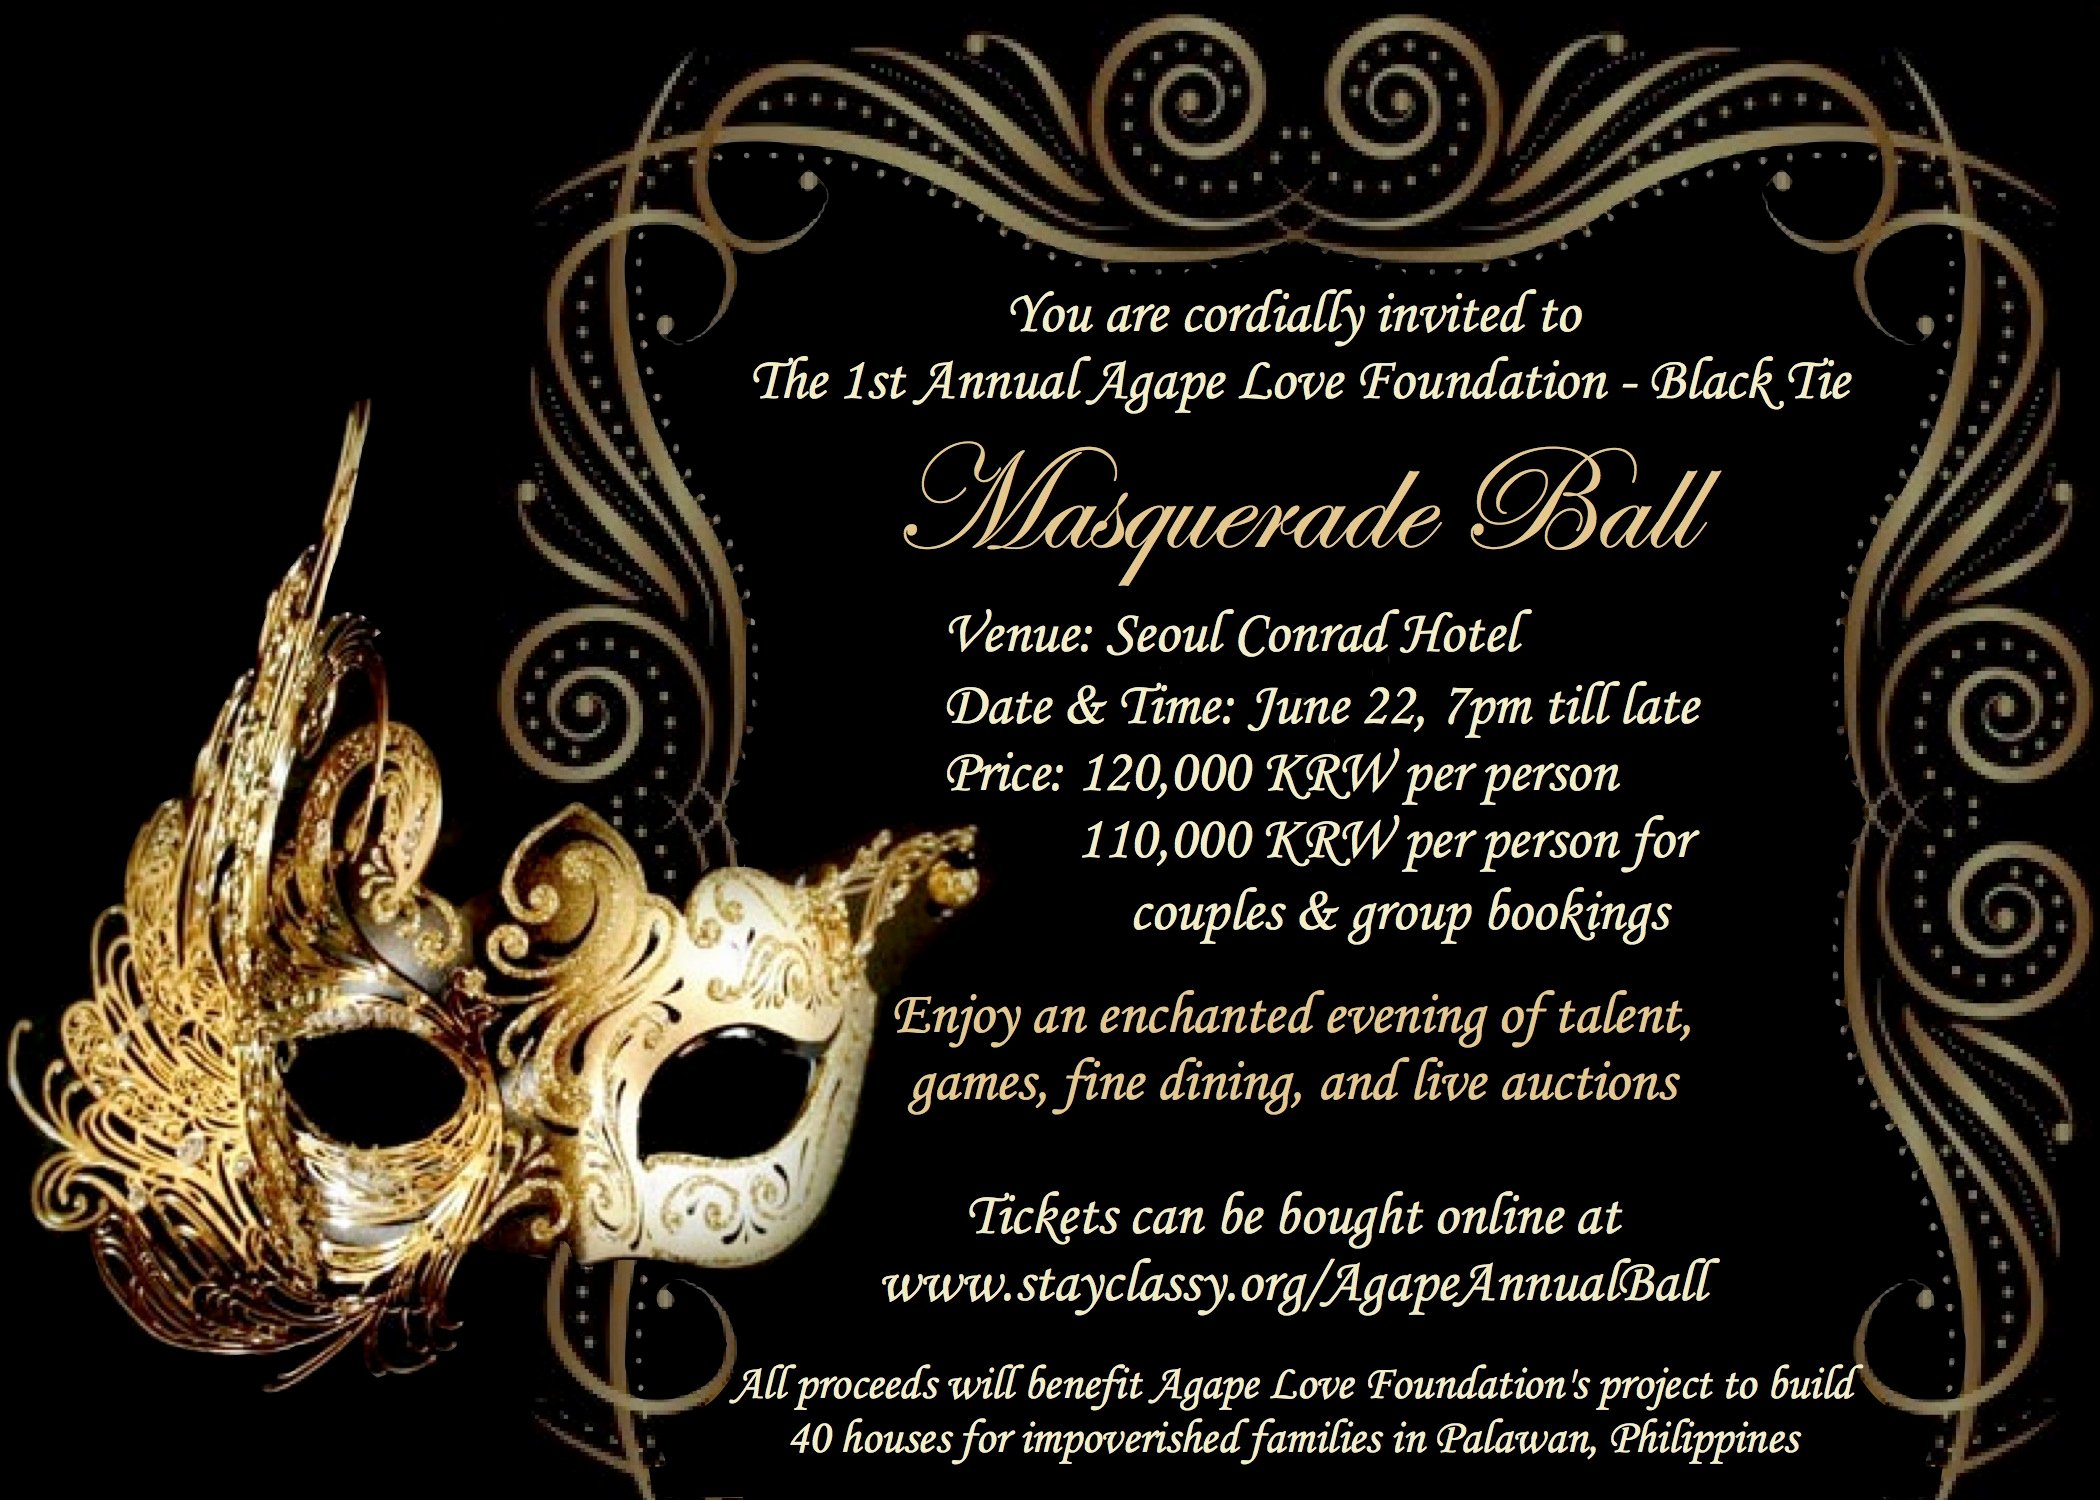 Masquerade Ball Invitations Template Inspirational Birthday Party Invitations Free Templates Free